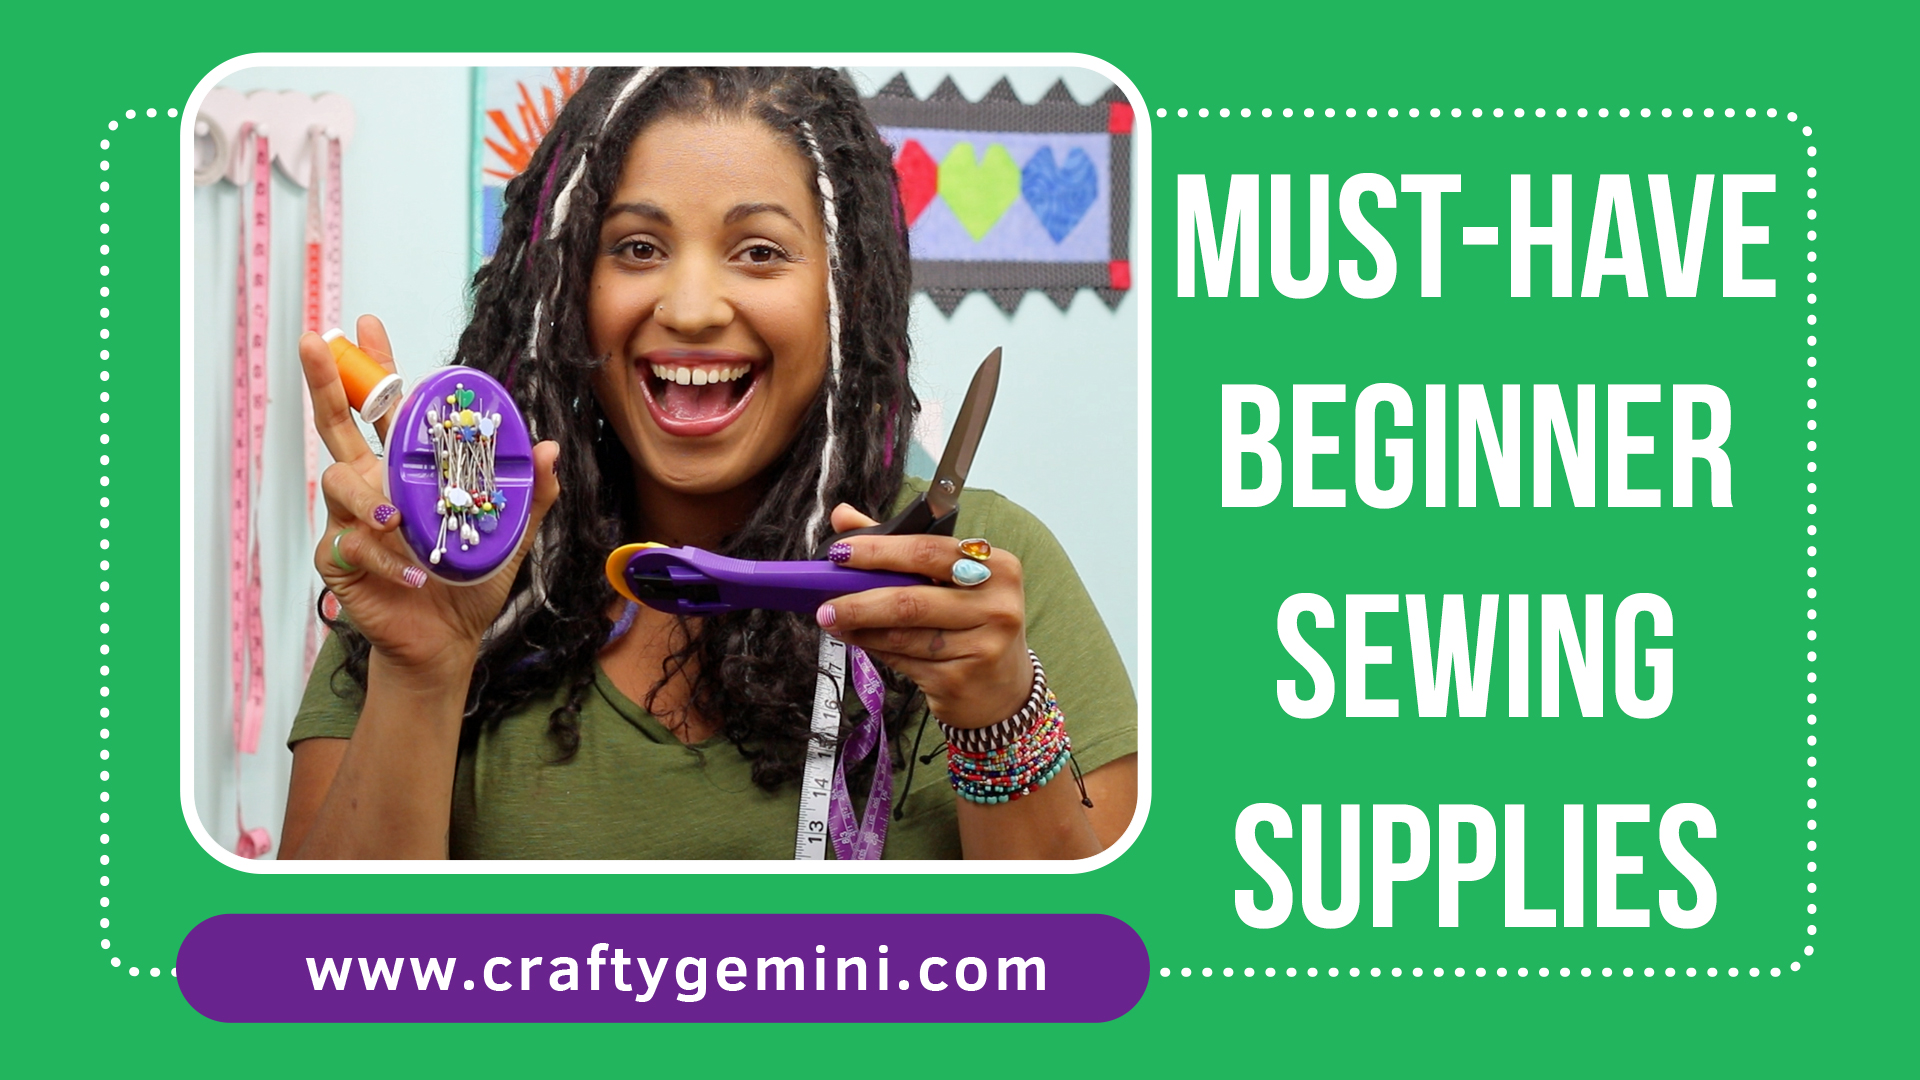 Must have sewing supplies for beginners crafty gemini